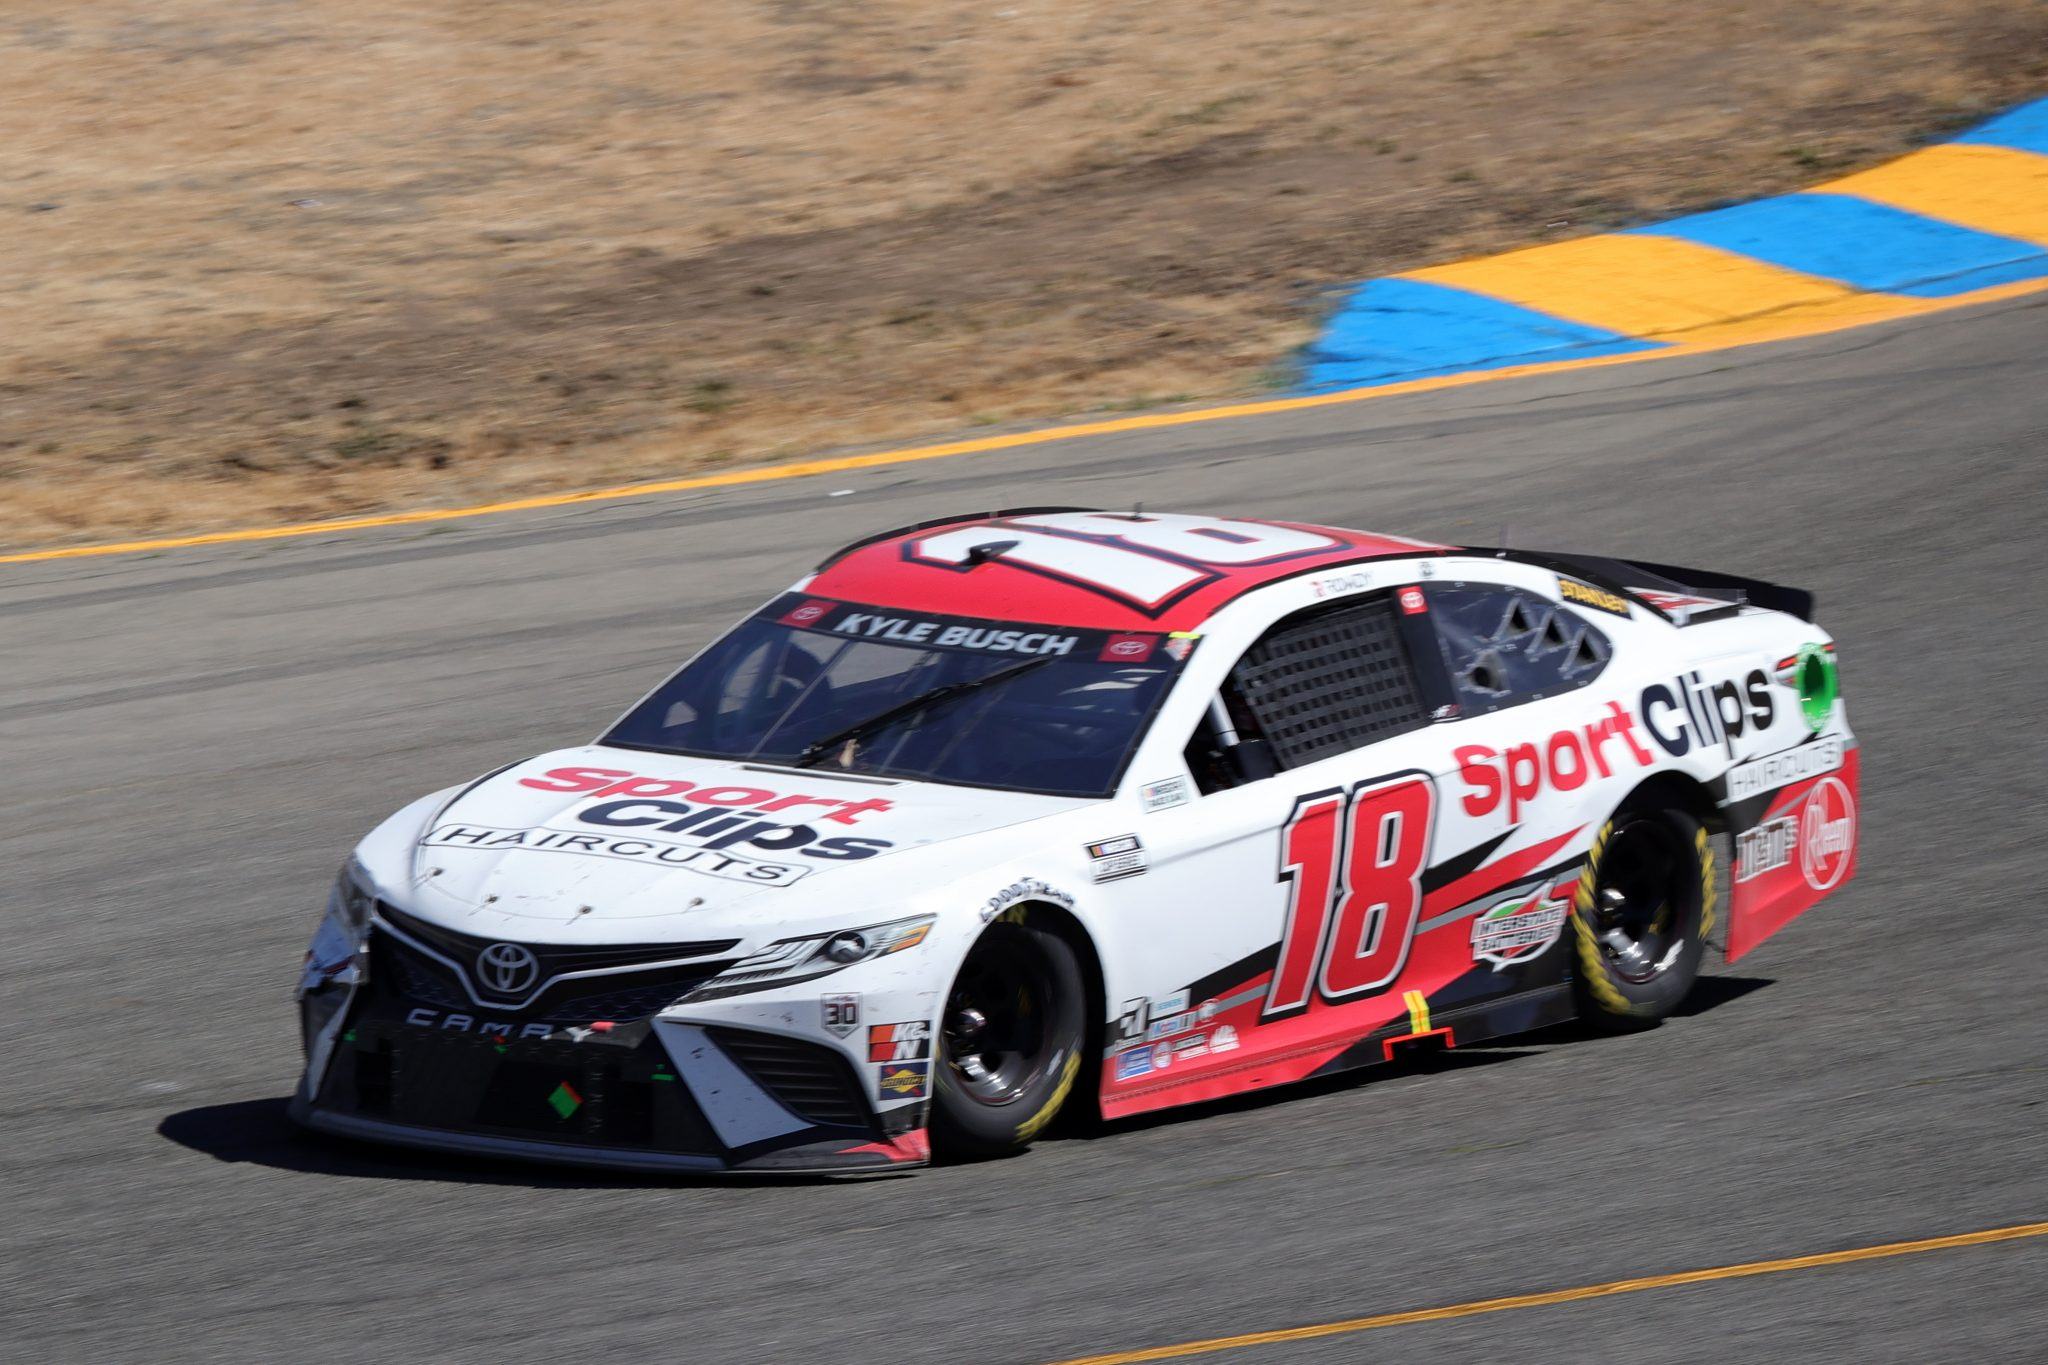 SONOMA, CALIFORNIA - JUNE 06: Kyle Busch, driver of the #18 Sport Clips Toyota, drives during the NASCAR Cup Series Toyota/Save Mart 350 at Sonoma Raceway on June 06, 2021 in Sonoma, California. (Photo by Carmen Mandato/Getty Images) | Getty Images